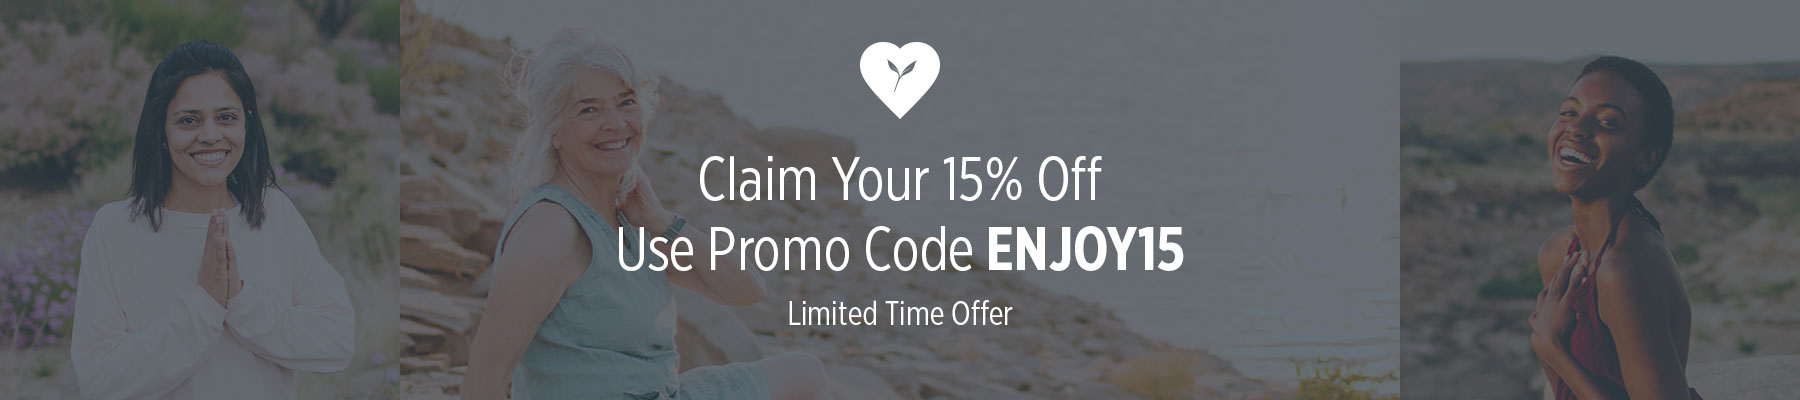 Claim Your 15% Off, Use Promo Code ENJOY15, Limited Time Offer